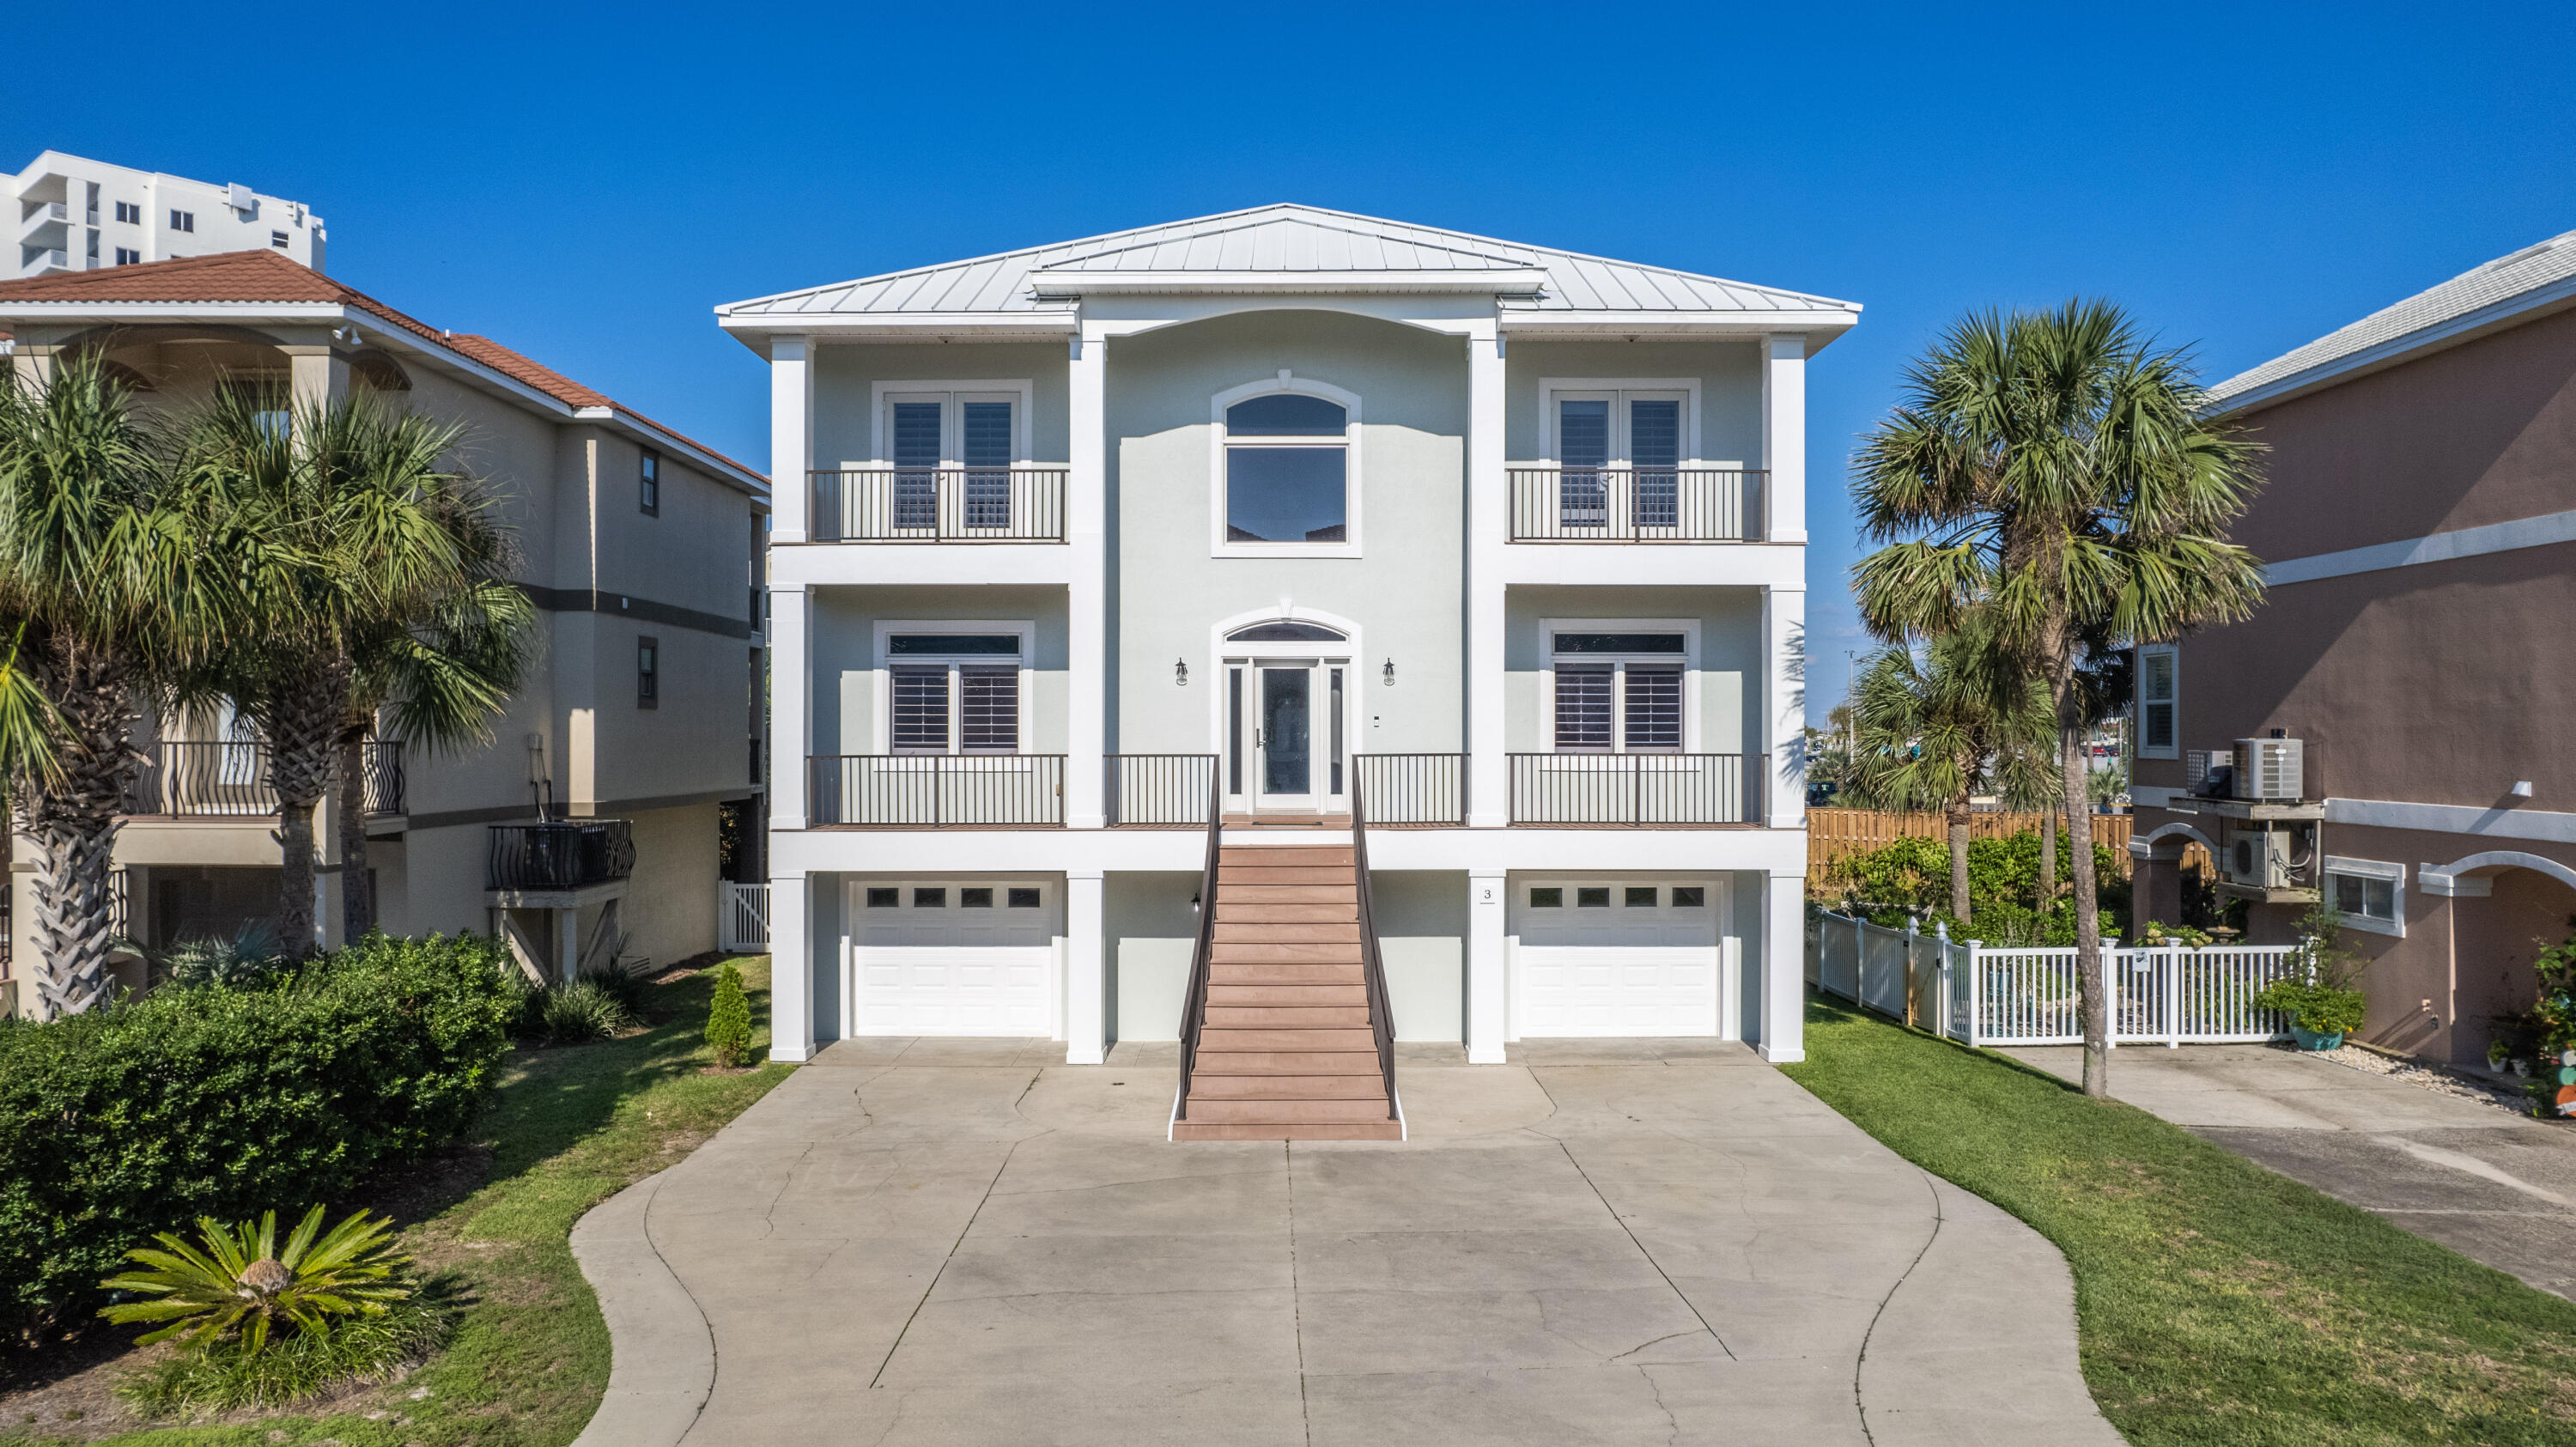 Conveniently located on Pensacola Beach in the private community of La Caribe, this gorgeous home offers an open spacious floor plan with 10 foot soaring ceilings and impact resistant doors and windows with fresh paint on both interior and exterior. Located on the ground floor, you'll enjoy an awesome climate controlled 1300+ sq ft bonus living area with a full bathroom and additional storage that is perfect for entertaining or even a pool room. With an optimal location, it's just a short walk across the street to Casino Beach (public beach access), the pier, Boardwalk and a plethora of dining and entertainment options all within walking distance. The main living floor has crown molding and travertine flooring throughout with all new tasteful light fixtures. The kitchen comes equipped with  granite countertops, stainless steel appliances, wall oven, island with a breakfast bar and a pantry. Just off the kitchen is the entry to the oversized partially covered balcony creating the perfect entertaining space. The third floor hosts the primary suite with bamboo wood flooring, large walk-in closet with separate dressing area. The primary bathroom has dual vanities, a walk-in shower, water closet and jetted tub. Enjoy Gulf views from the private balcony located off the primary bedroom. Other notables are plantation shutters throughout, Trex decking, new ice maker, and outdoor shower. Power source in garage to support a generator to power the entire house. Conveniently hop around the island via golf cart and enjoy all Pensacola Beach has to offer such as Fort Pickens, the National Seashore and miles of wonderful walking/biking paths. Since the neighborhood of La Caribe does not allow short term vacation rentals, you can enjoy your privacy and a peaceful community all year-round.  Enjoy great, full time residents in this sought after exclusive Pensacola beach community! Check out our full video tour on the MLS and YouTube.